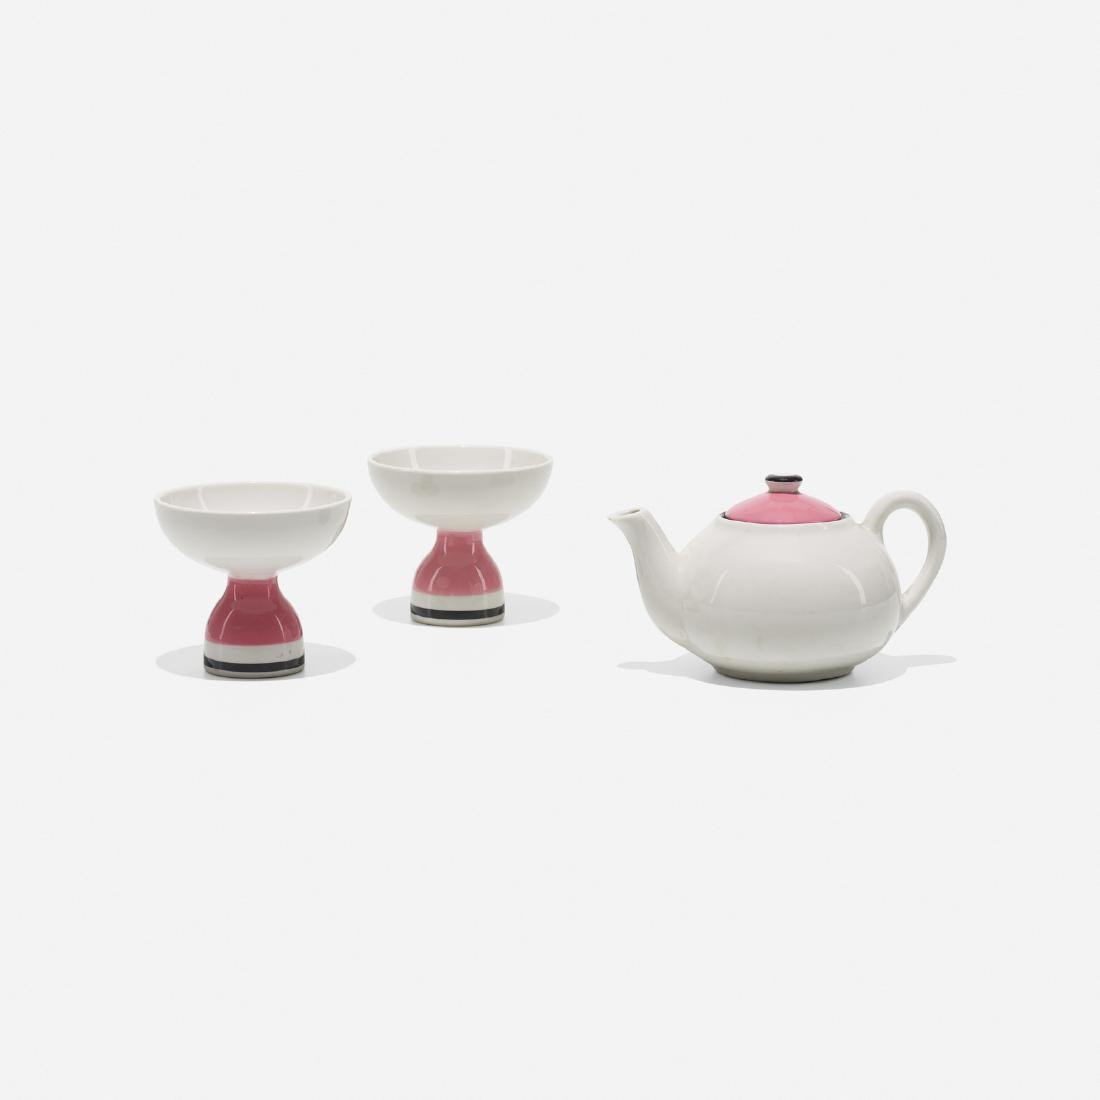 Girard, teapot & two footed bowls, La Fonda del Sol